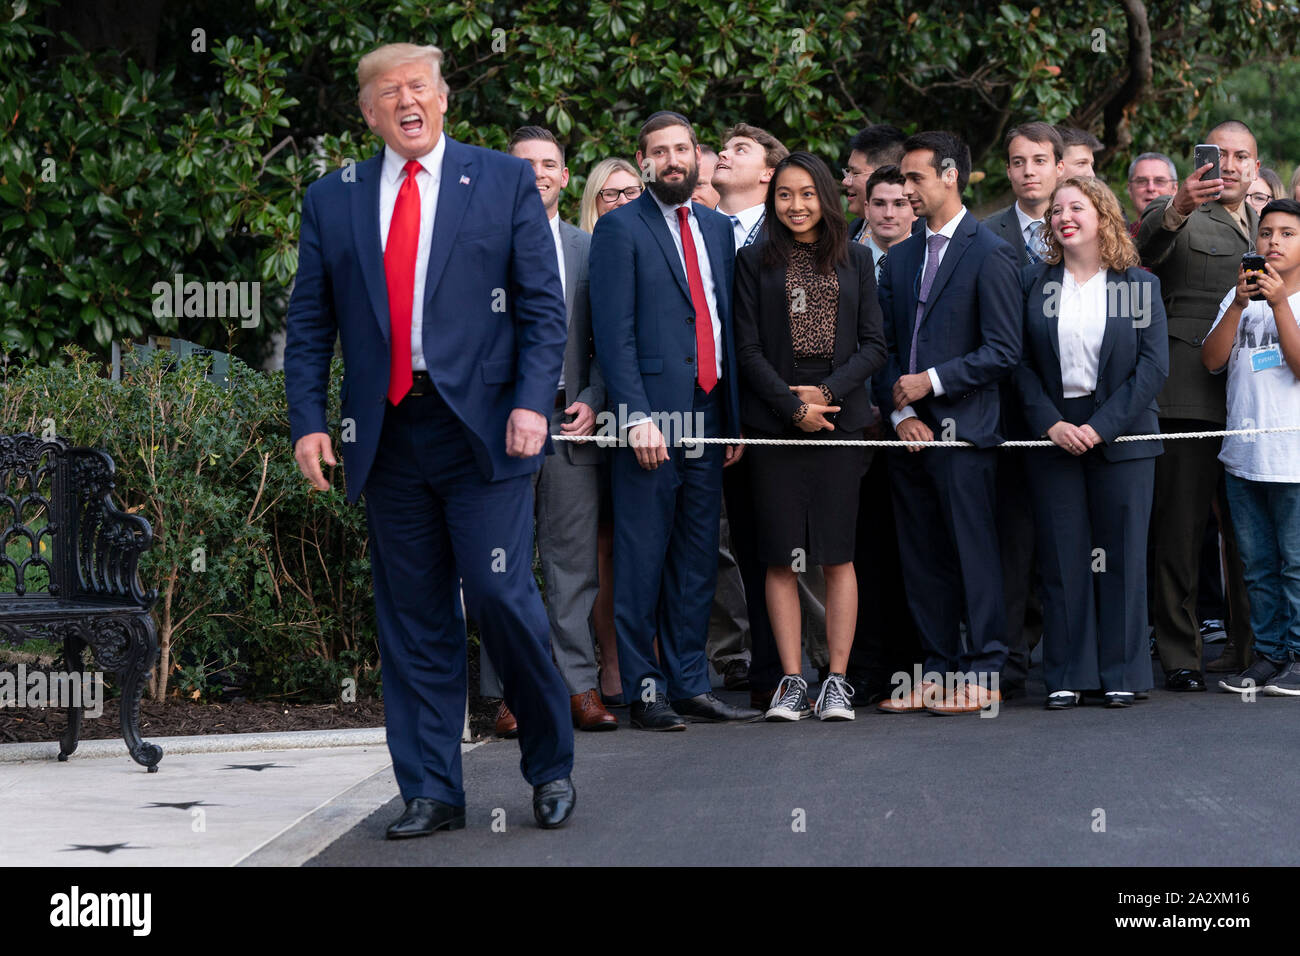 """Washington, United States Of America. 03rd Oct, 2019. United States President Donald J. Trump returns to the White House in Washington, DC after signing an executive order in The Villages, Florida """"Protecting and Improving Medicare"""" for senior citizens on Thursday, October 3, 2019.Credit: Chris Kleponis/Pool via CNP 